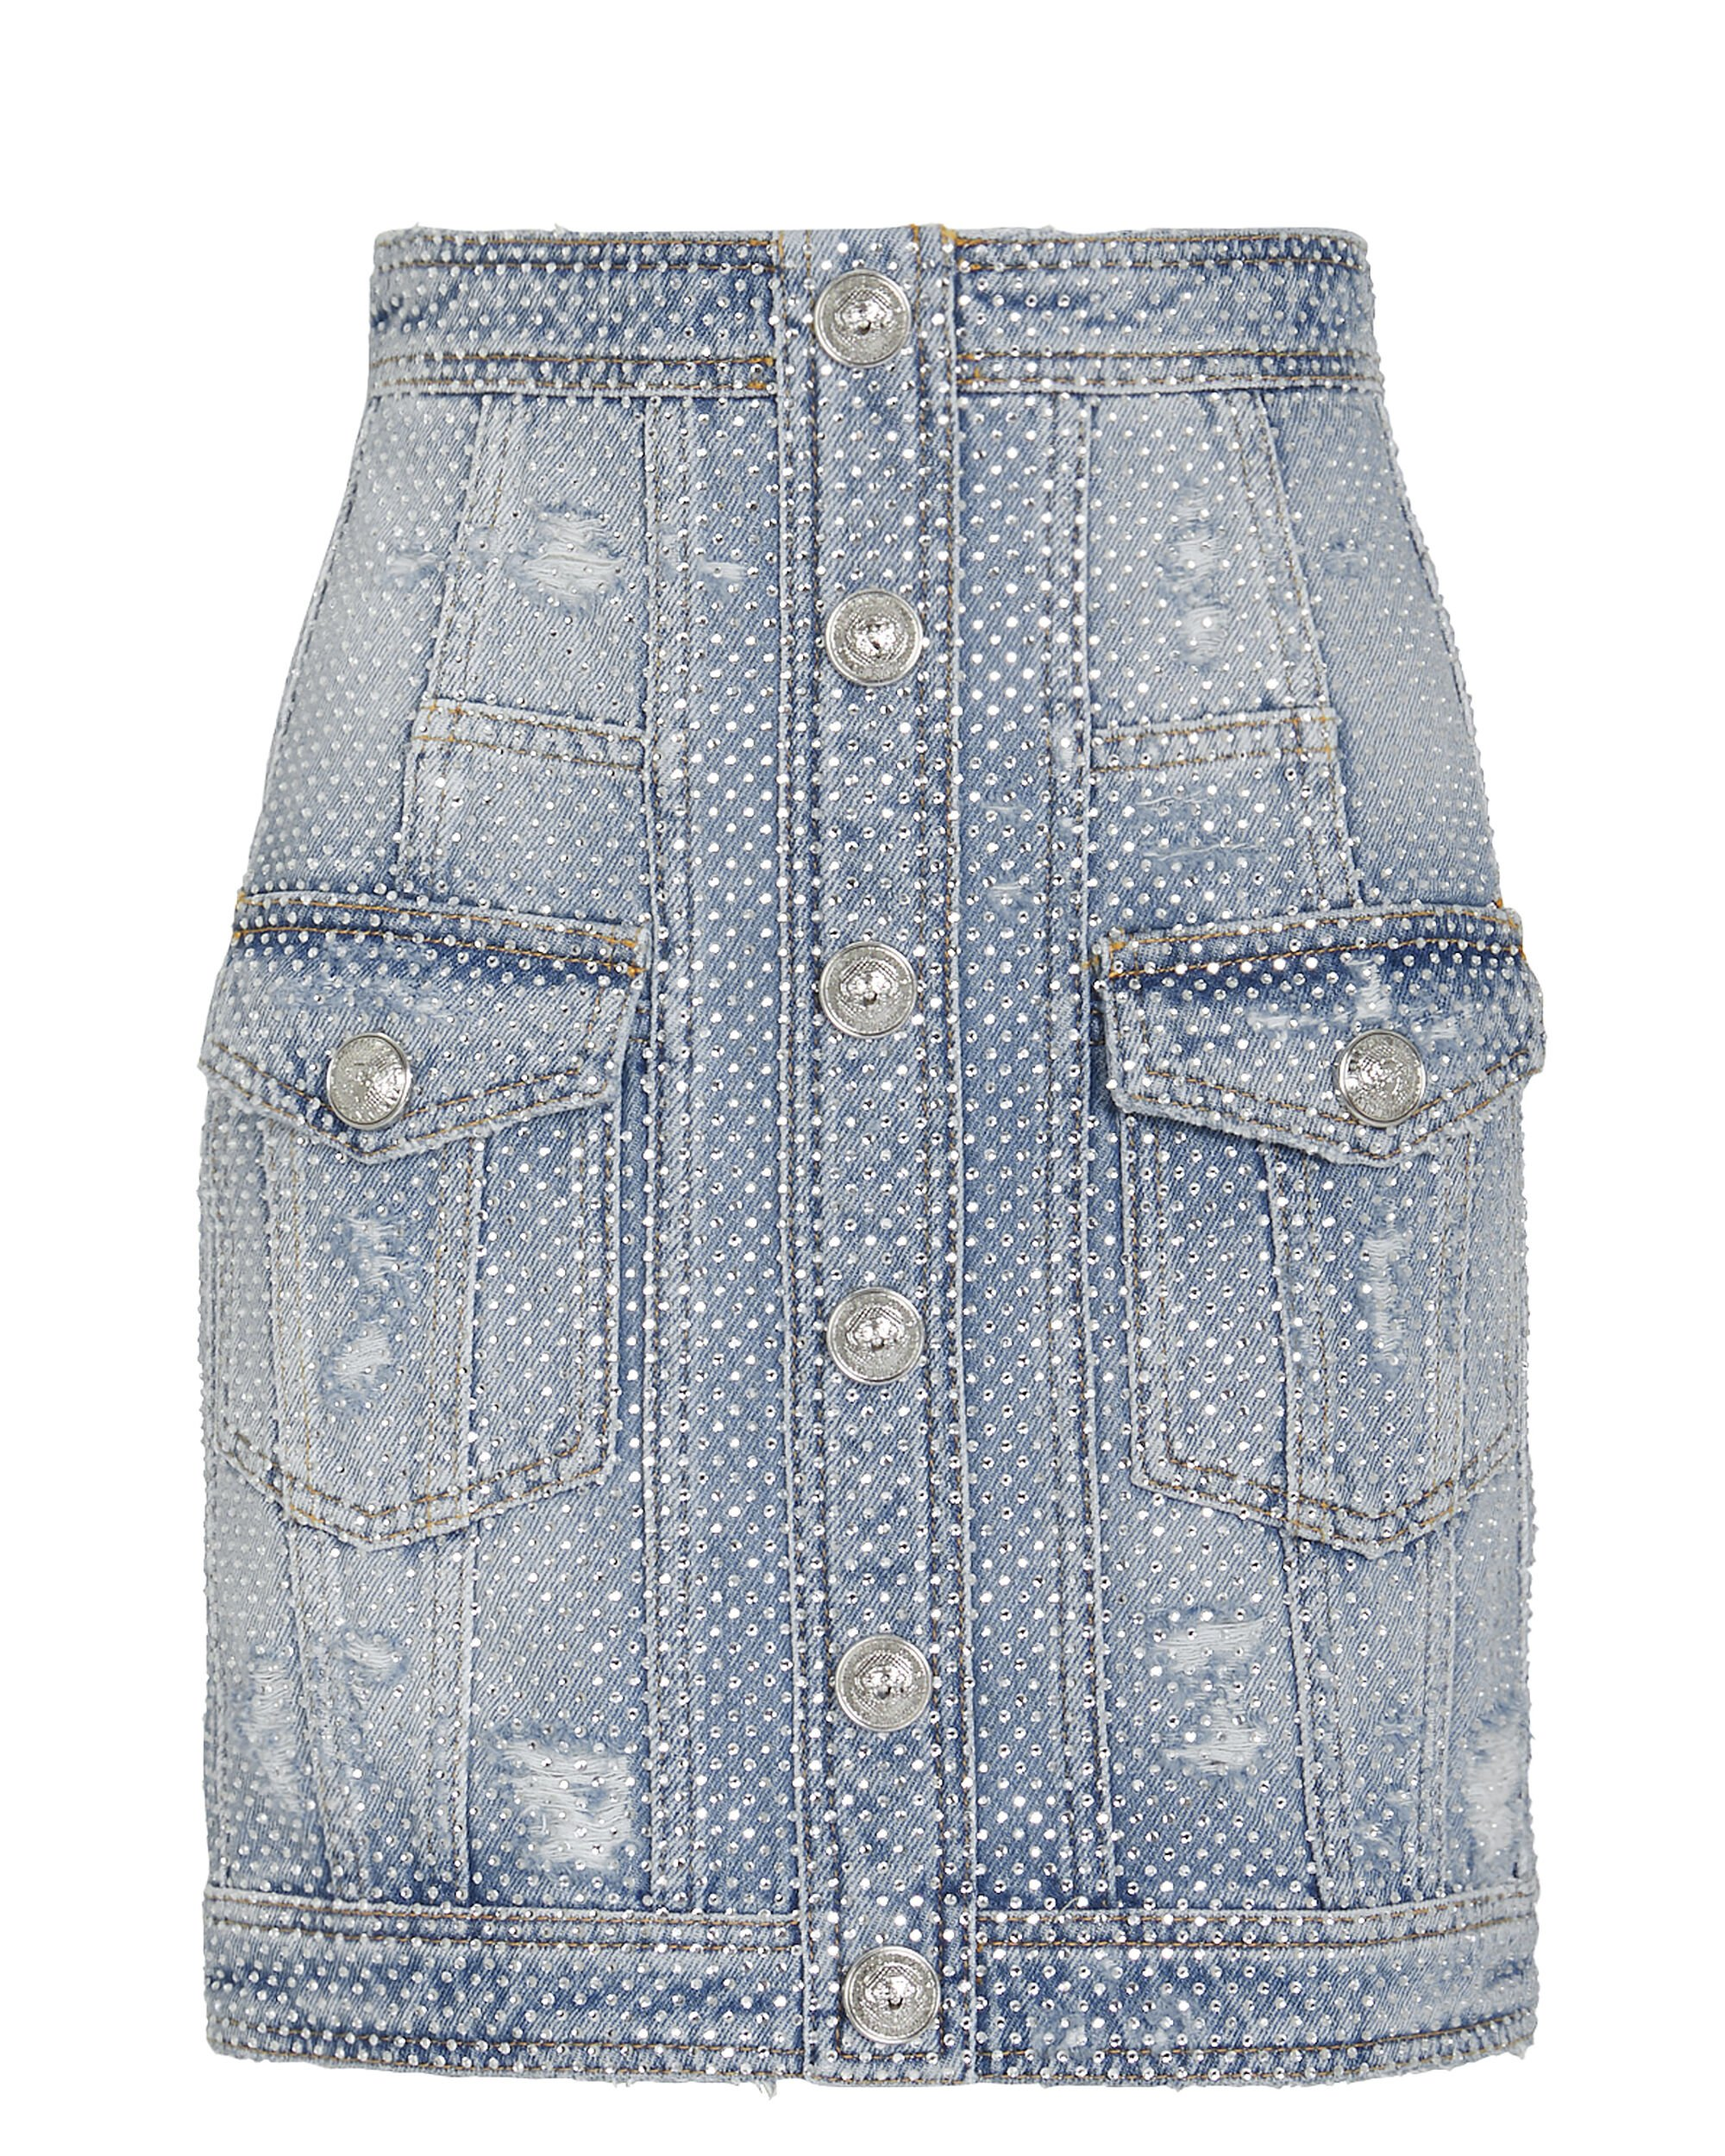 Embellished Denim Skirt, DENIM, hi-res